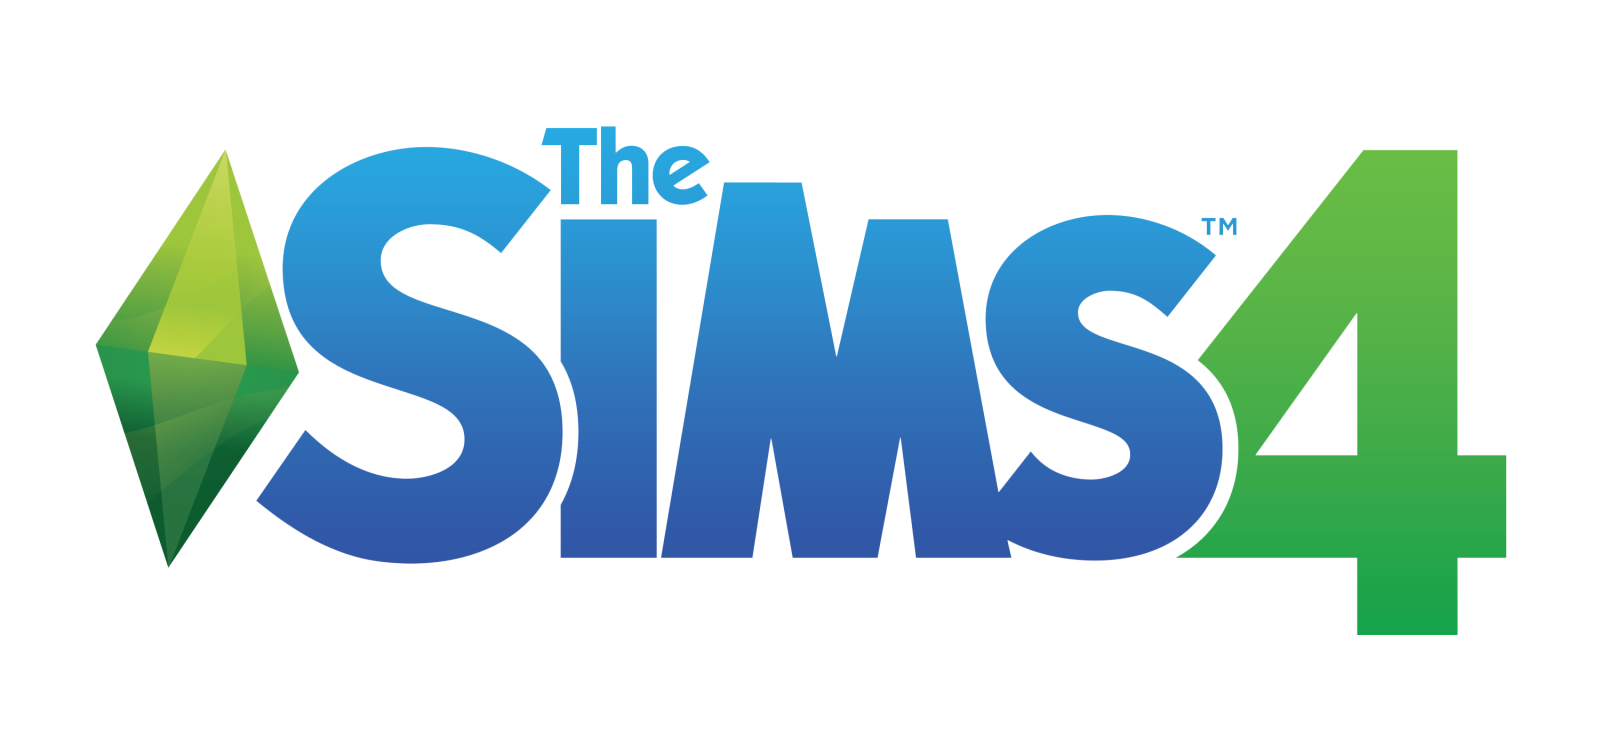 Sims 4 logo png. Image the logopedia fandom